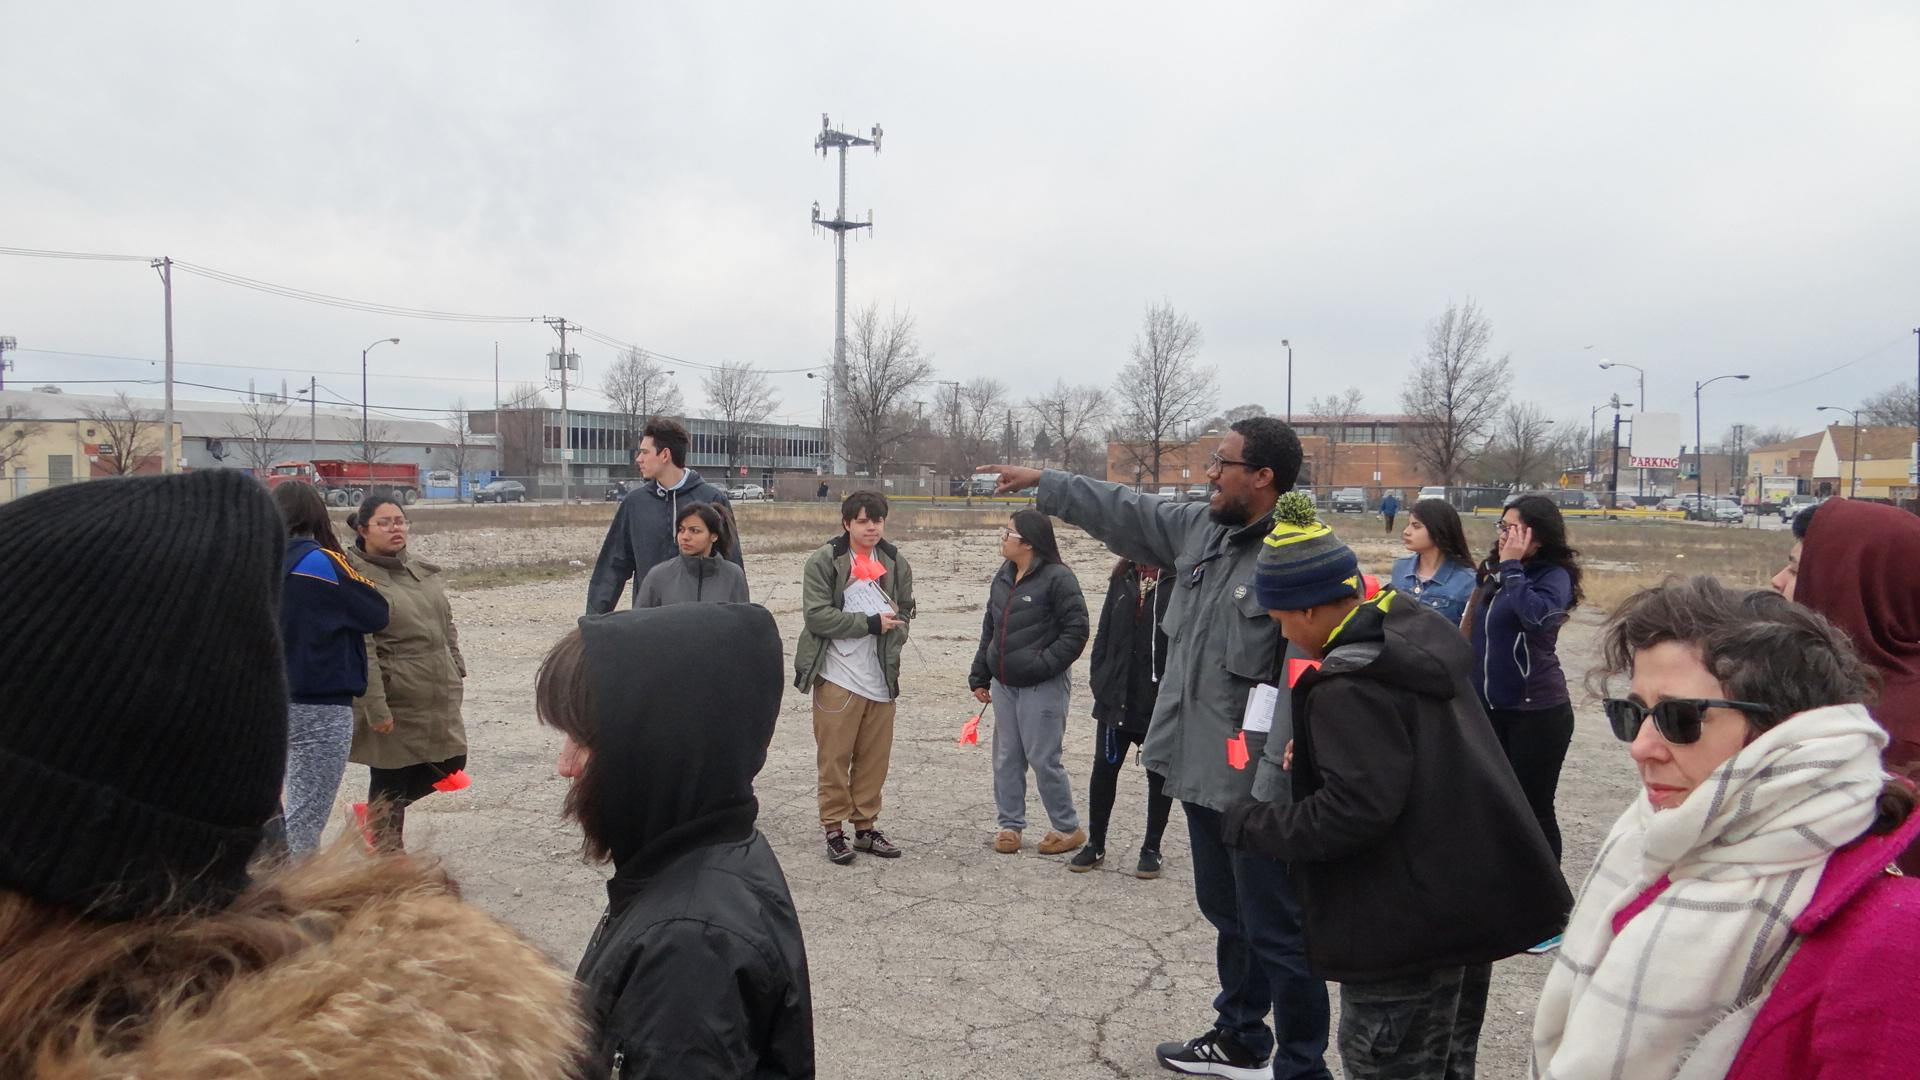 A group of people stand around an empty lot on a cold gray day. A figure in the center points to the left and several people look in that direction.